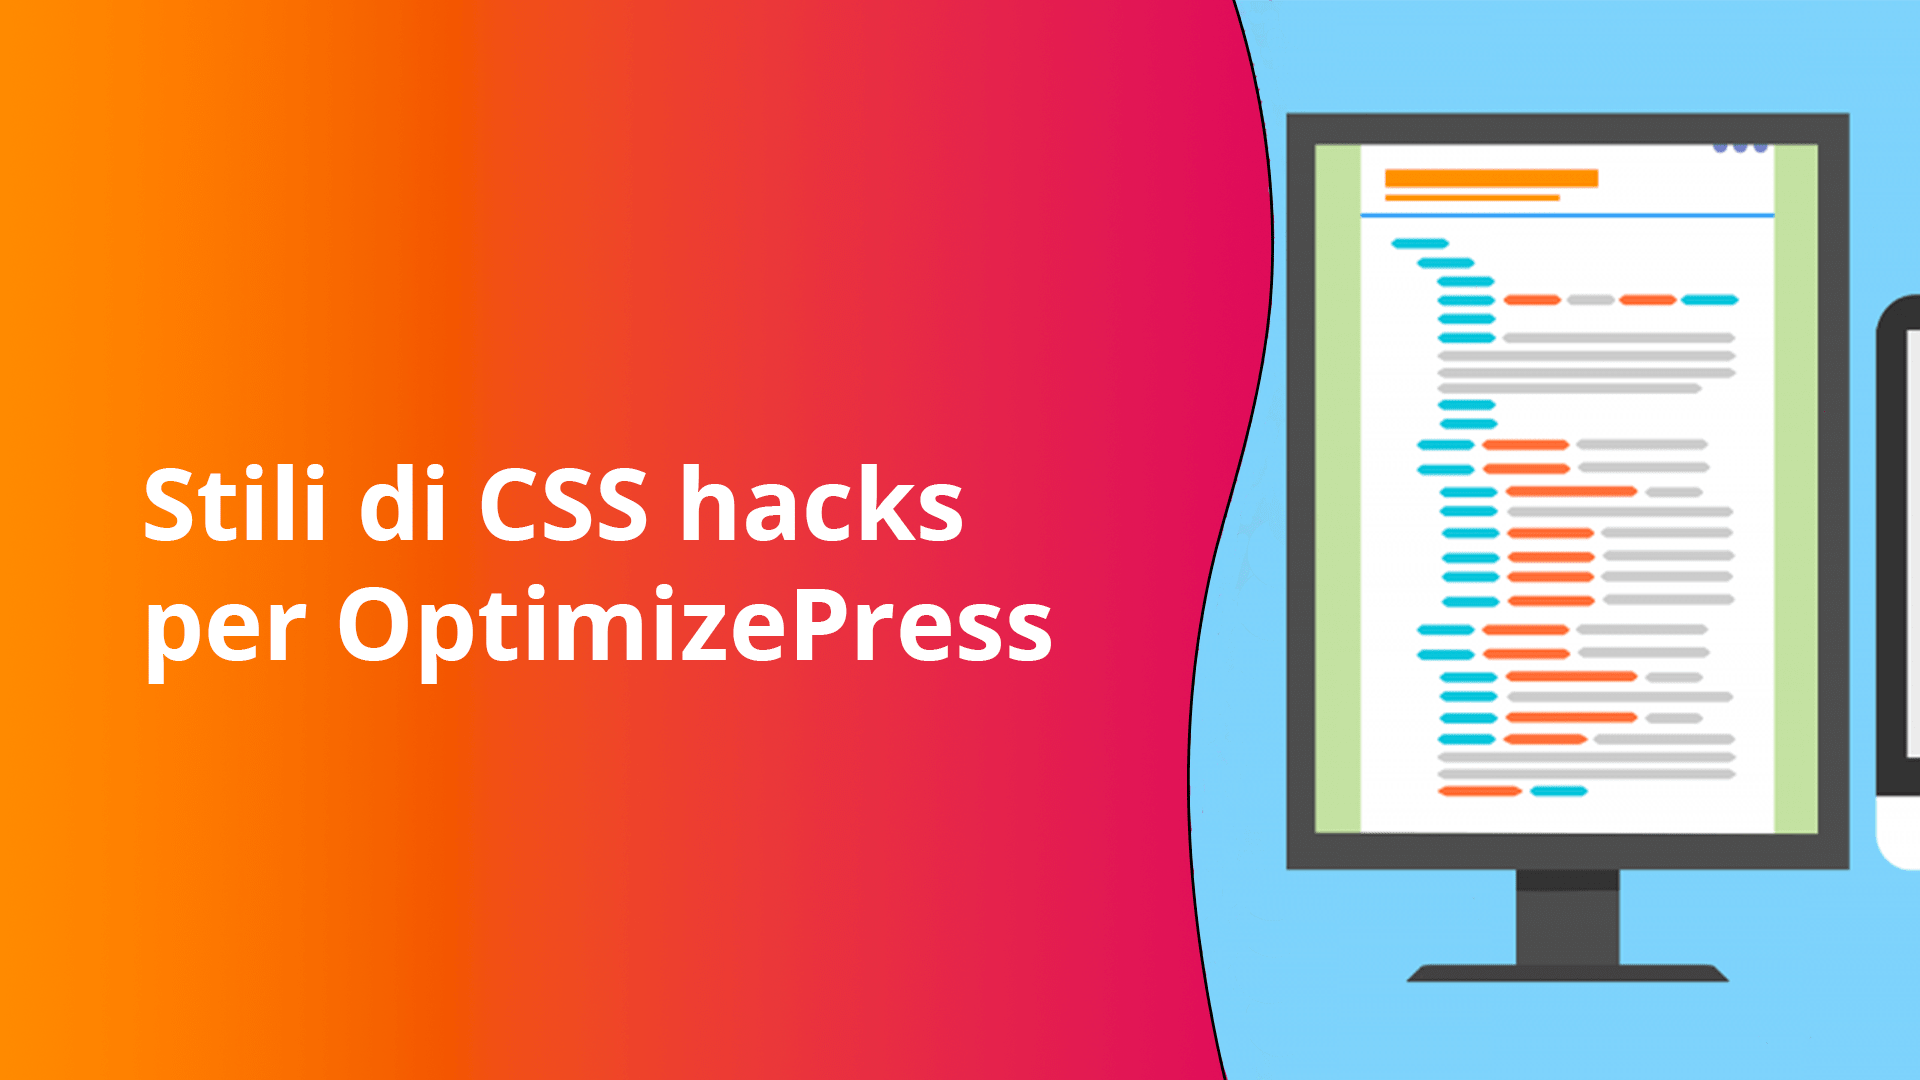 Stili di CSS hacks per OptimizePress